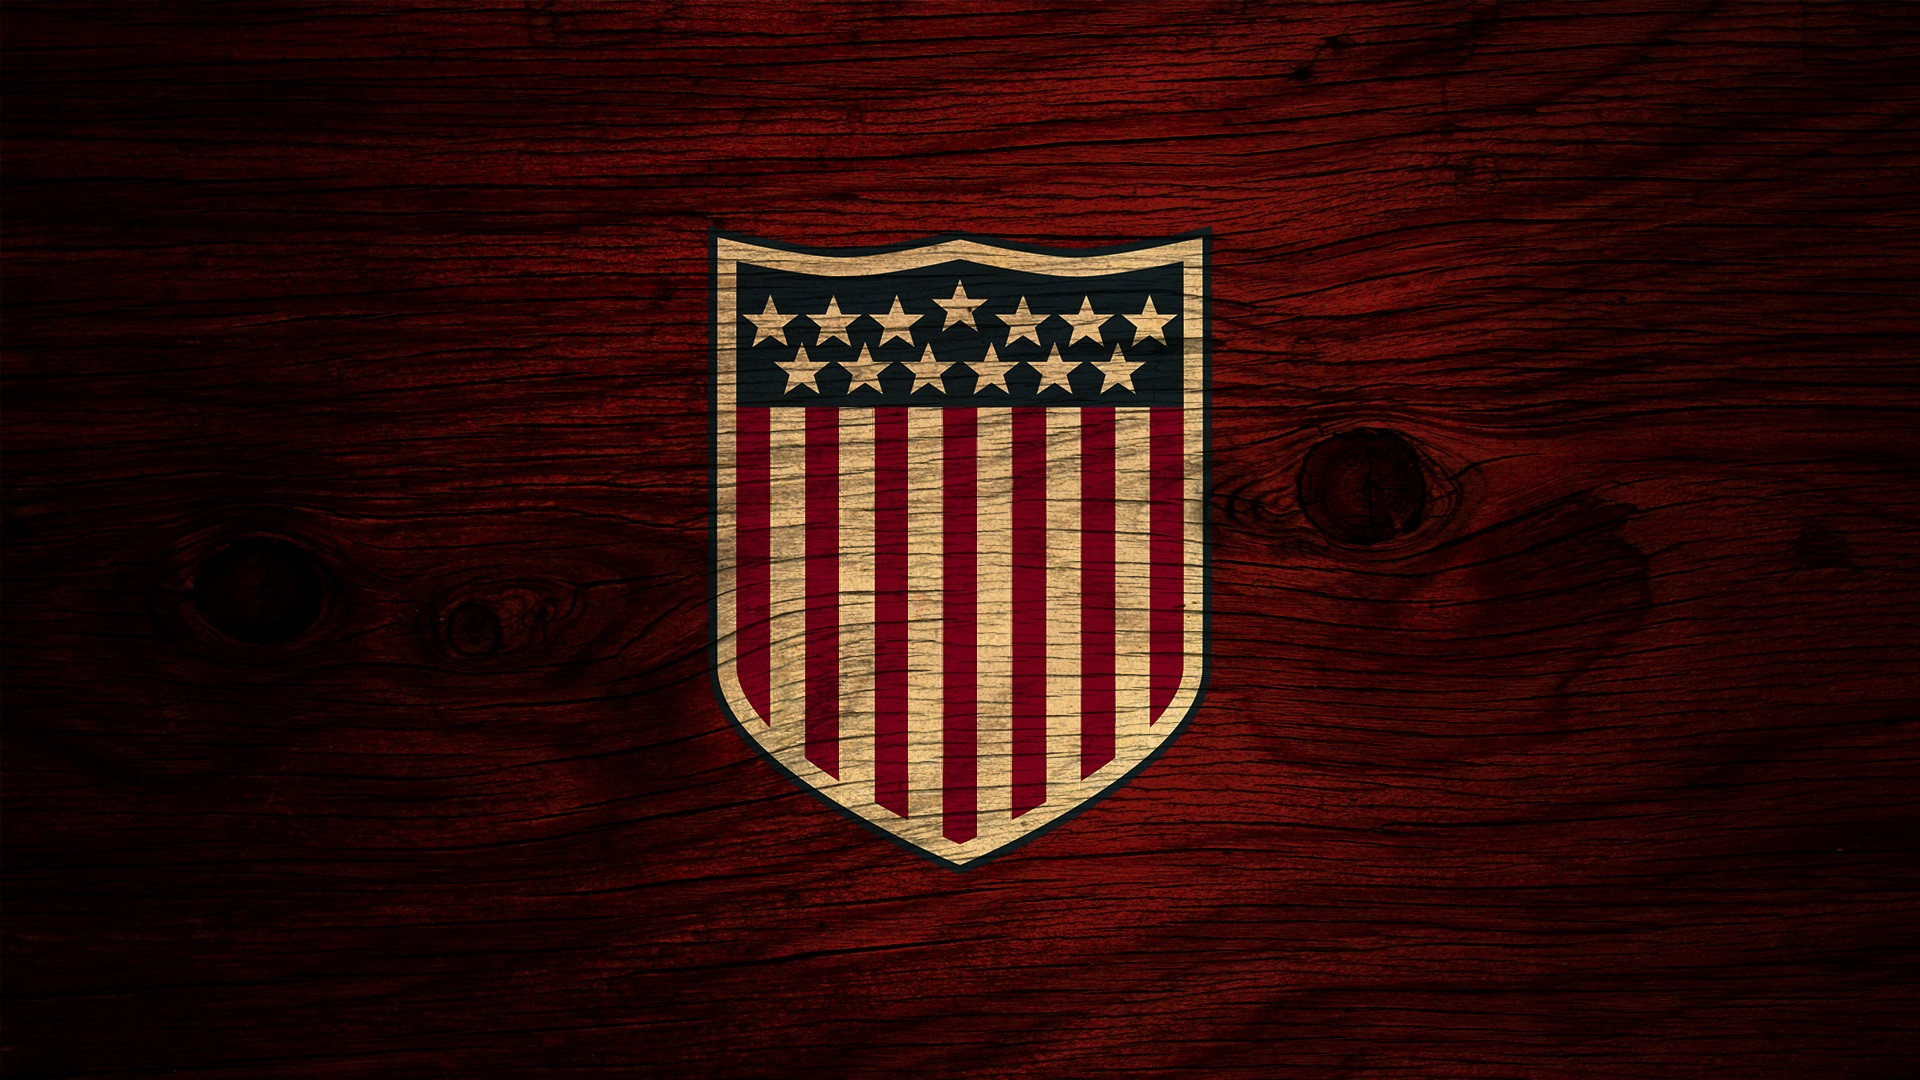 national teams united states wallpapers 795 8 wallpaper id 2263 1920x1080